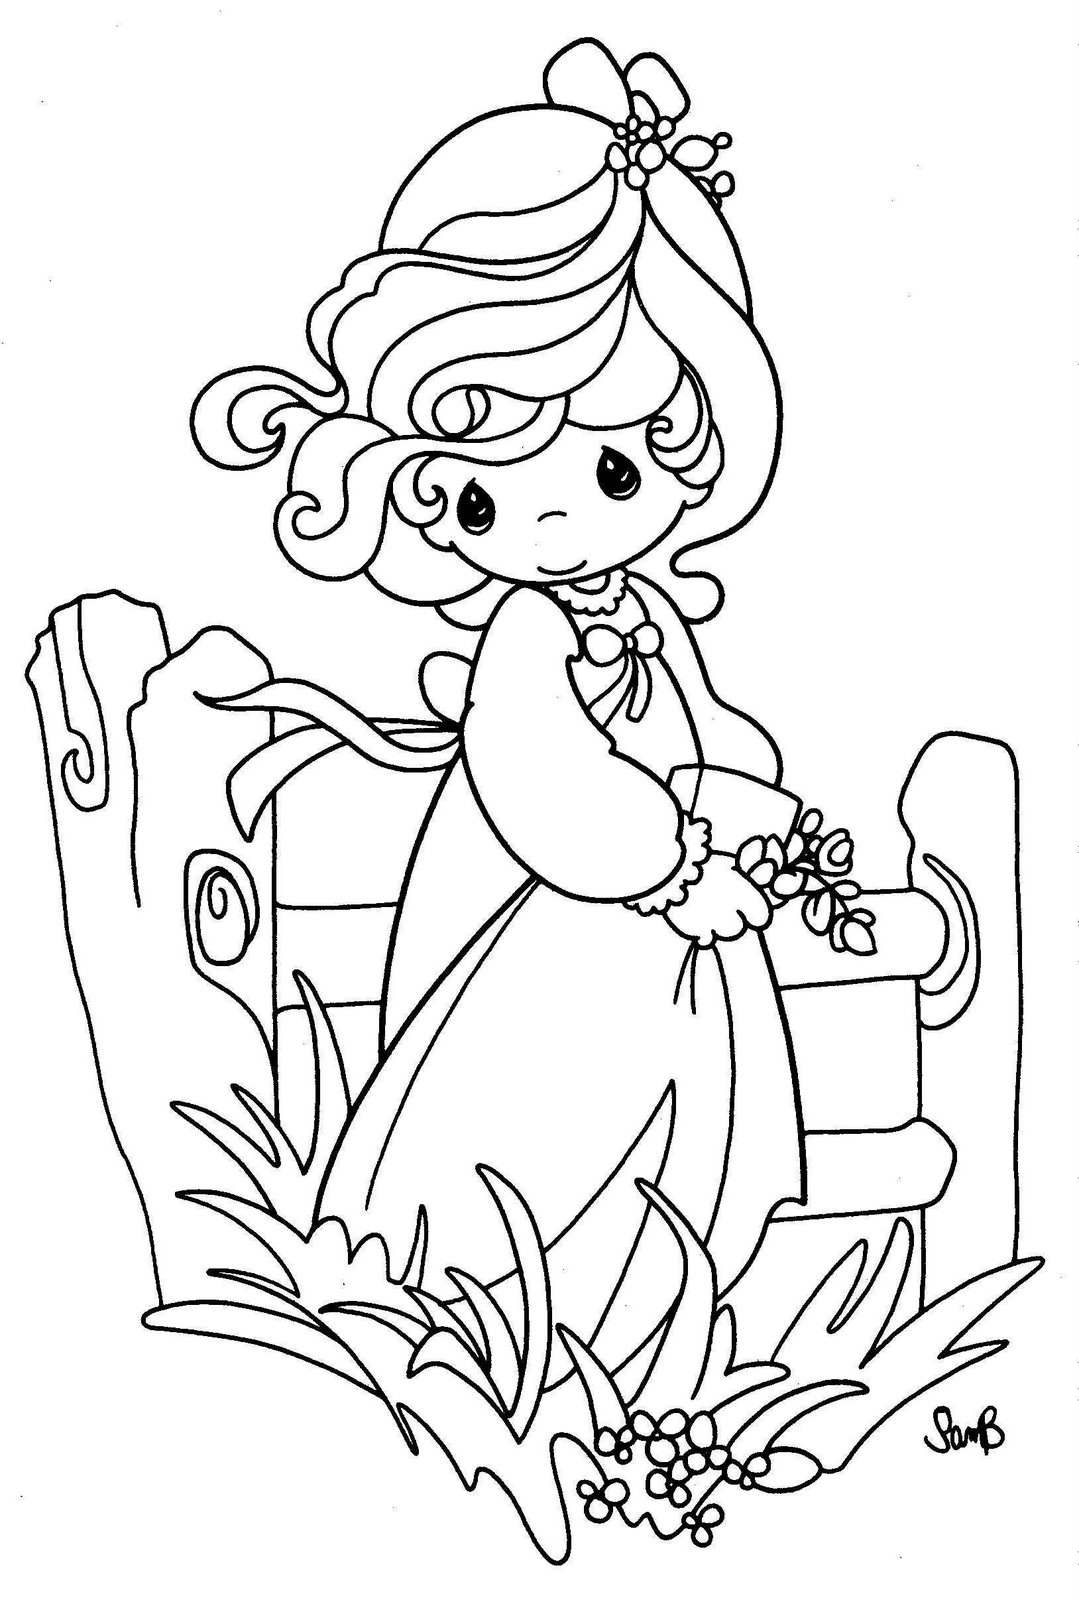 Precious Moments Coloring Pages and Book Unique  - precious moments coloring pages